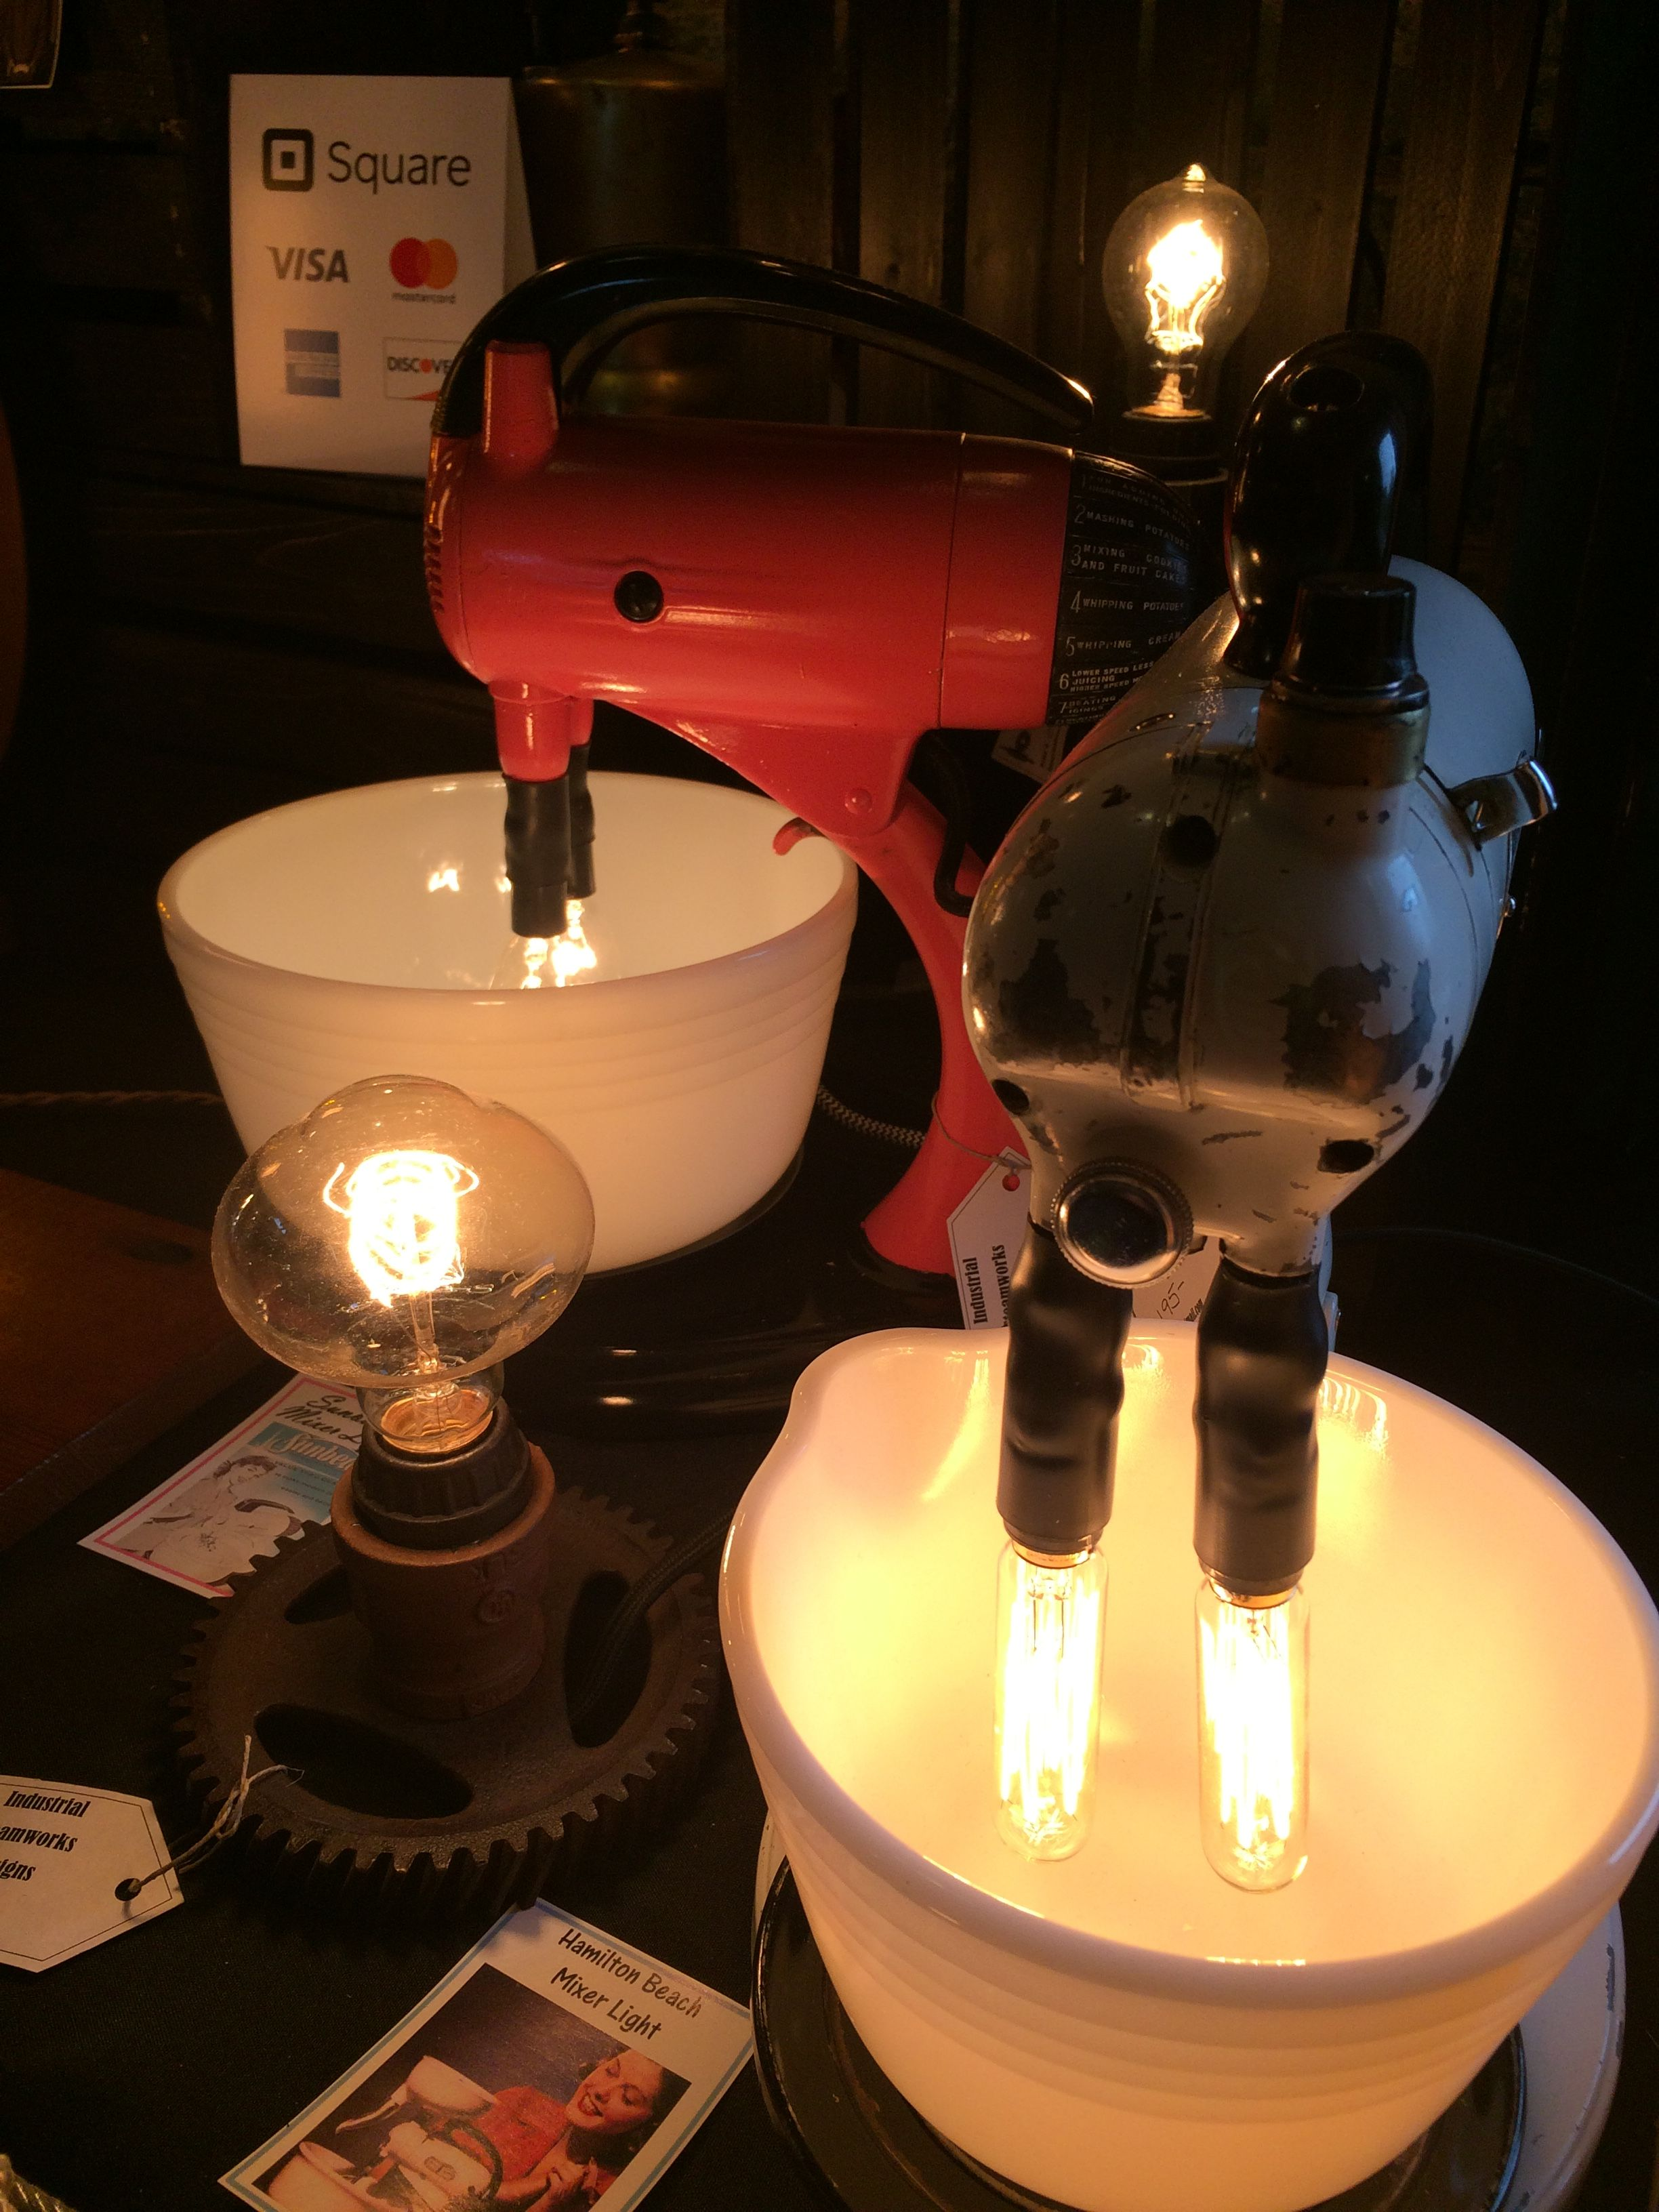 Mixer Accent Lights 195 00 Each Vintage Hamilton Beach And Sunbeam Mixers Converted Into Counter Top Lighting